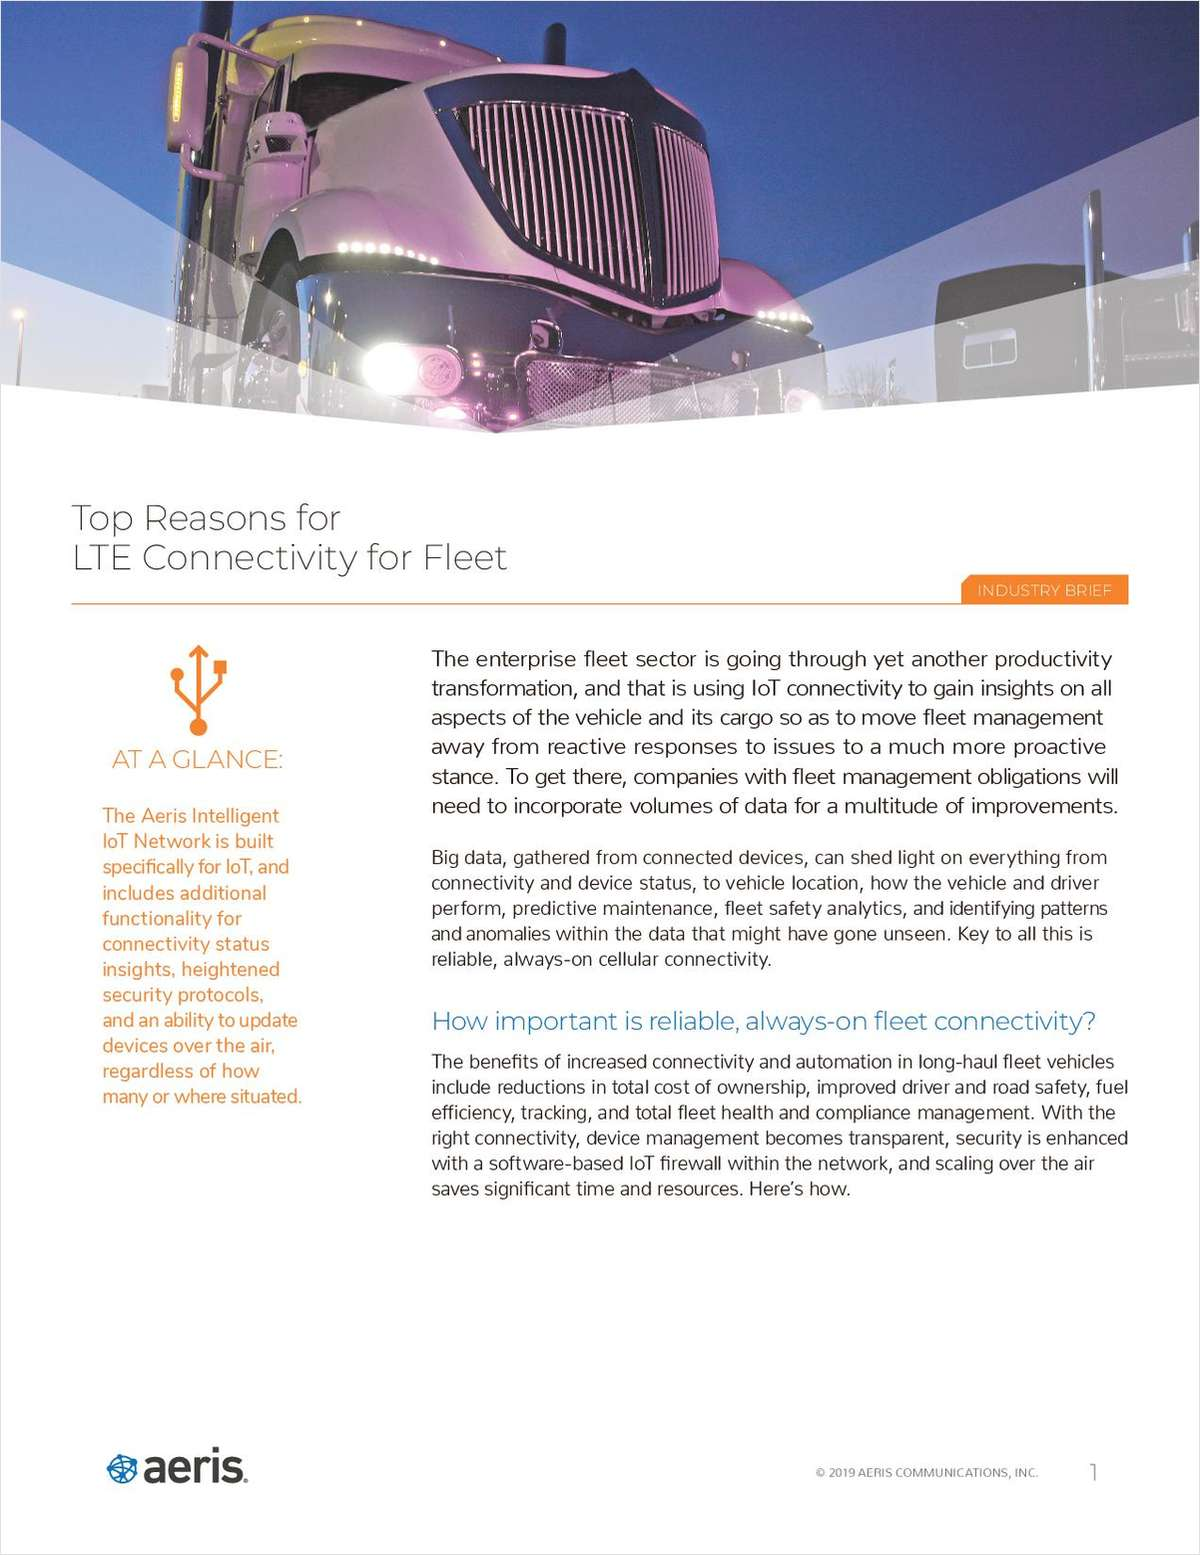 Top Reasons for LTE Connectivity for Fleet